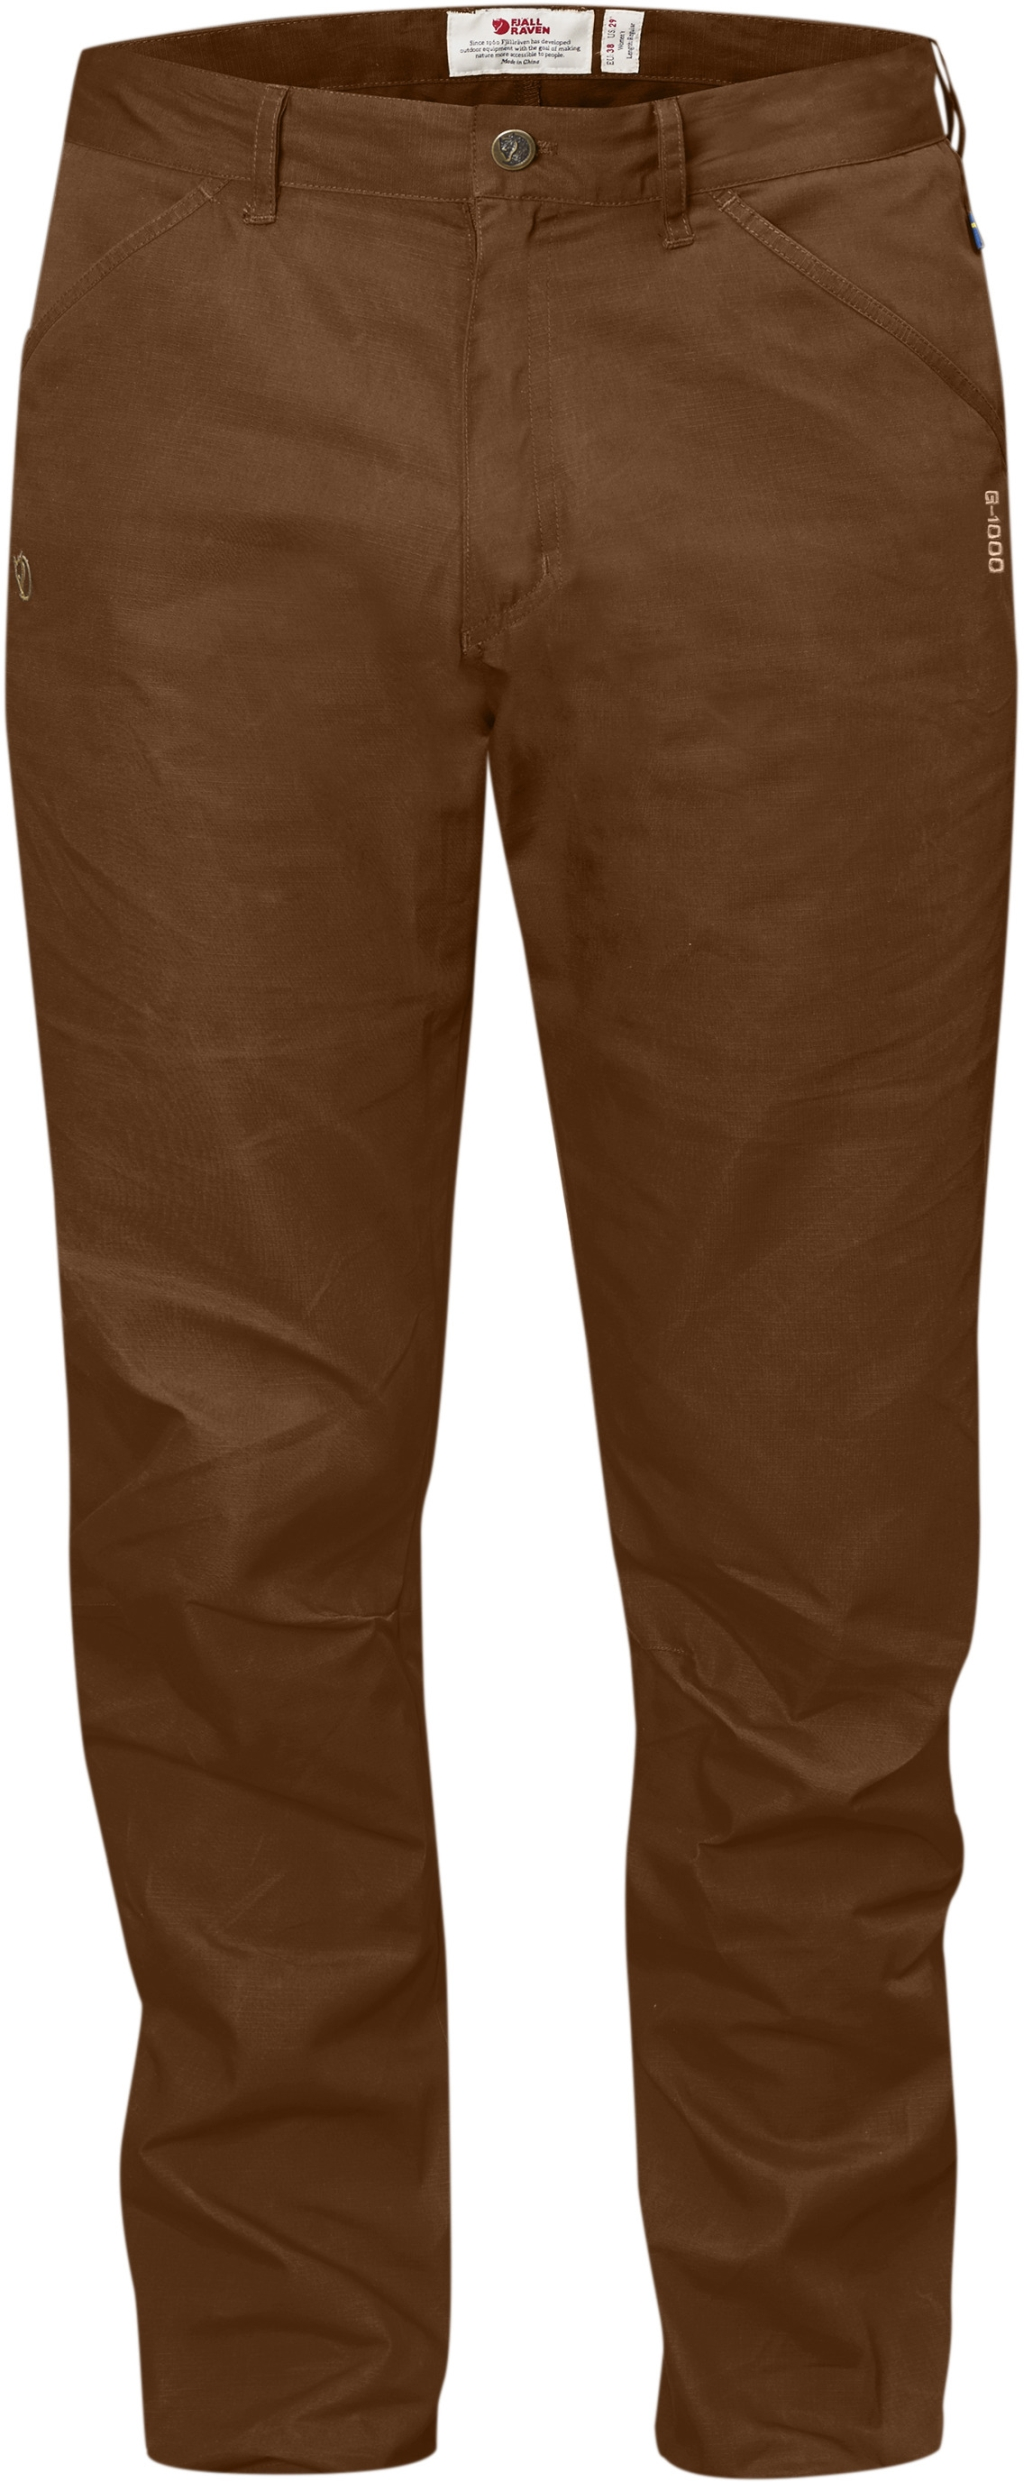 FjallRaven High Coast Trousers Chestnut-30